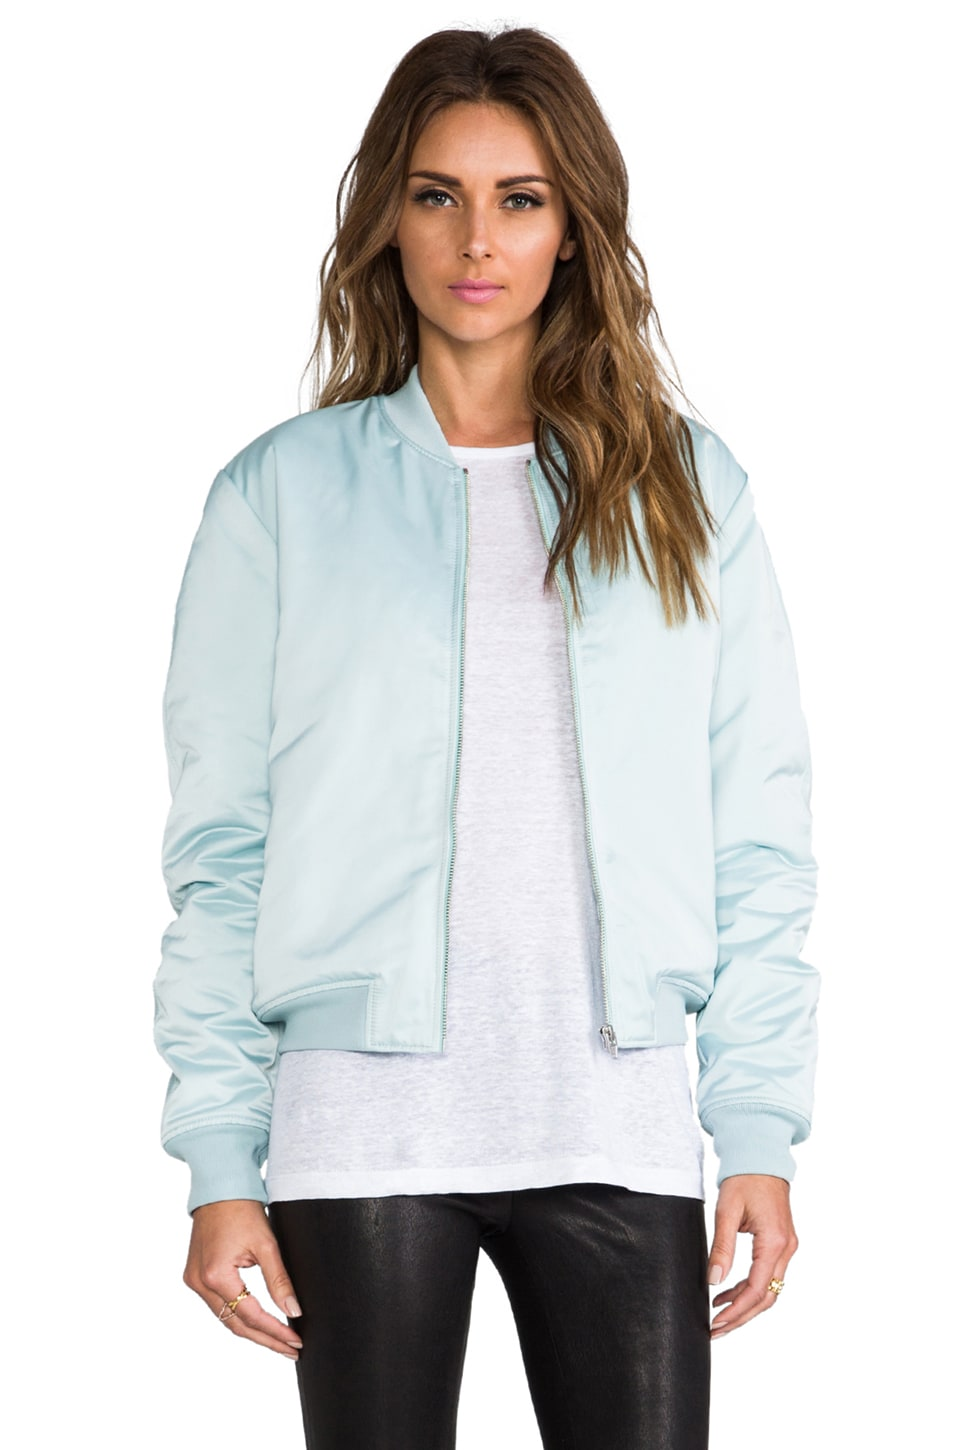 T by Alexander Wang Satin Bomber Jacket in Celadon